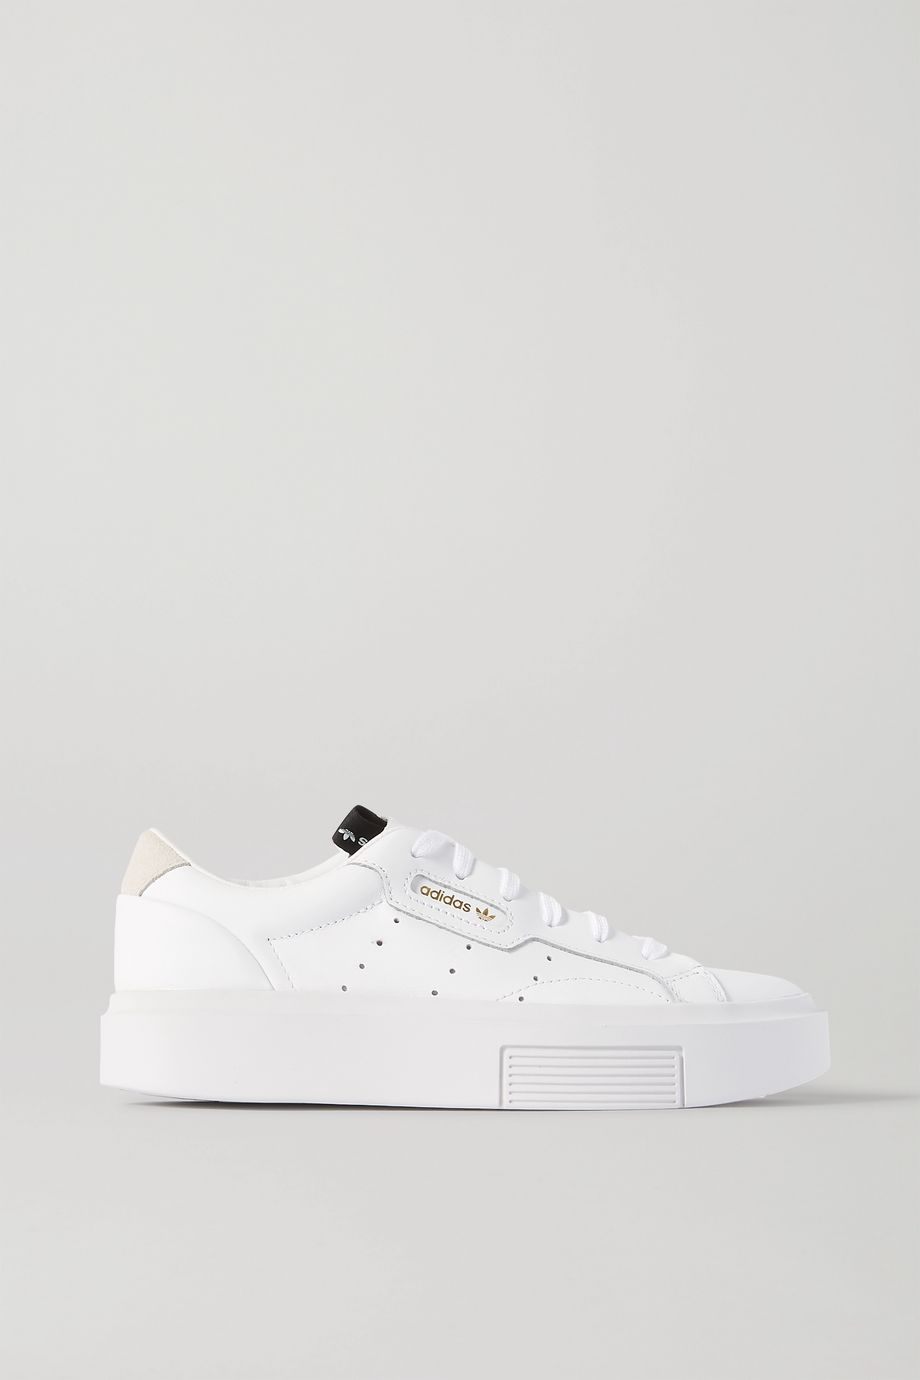 adidas Originals Sleek Super suede-trimmed leather sneakers